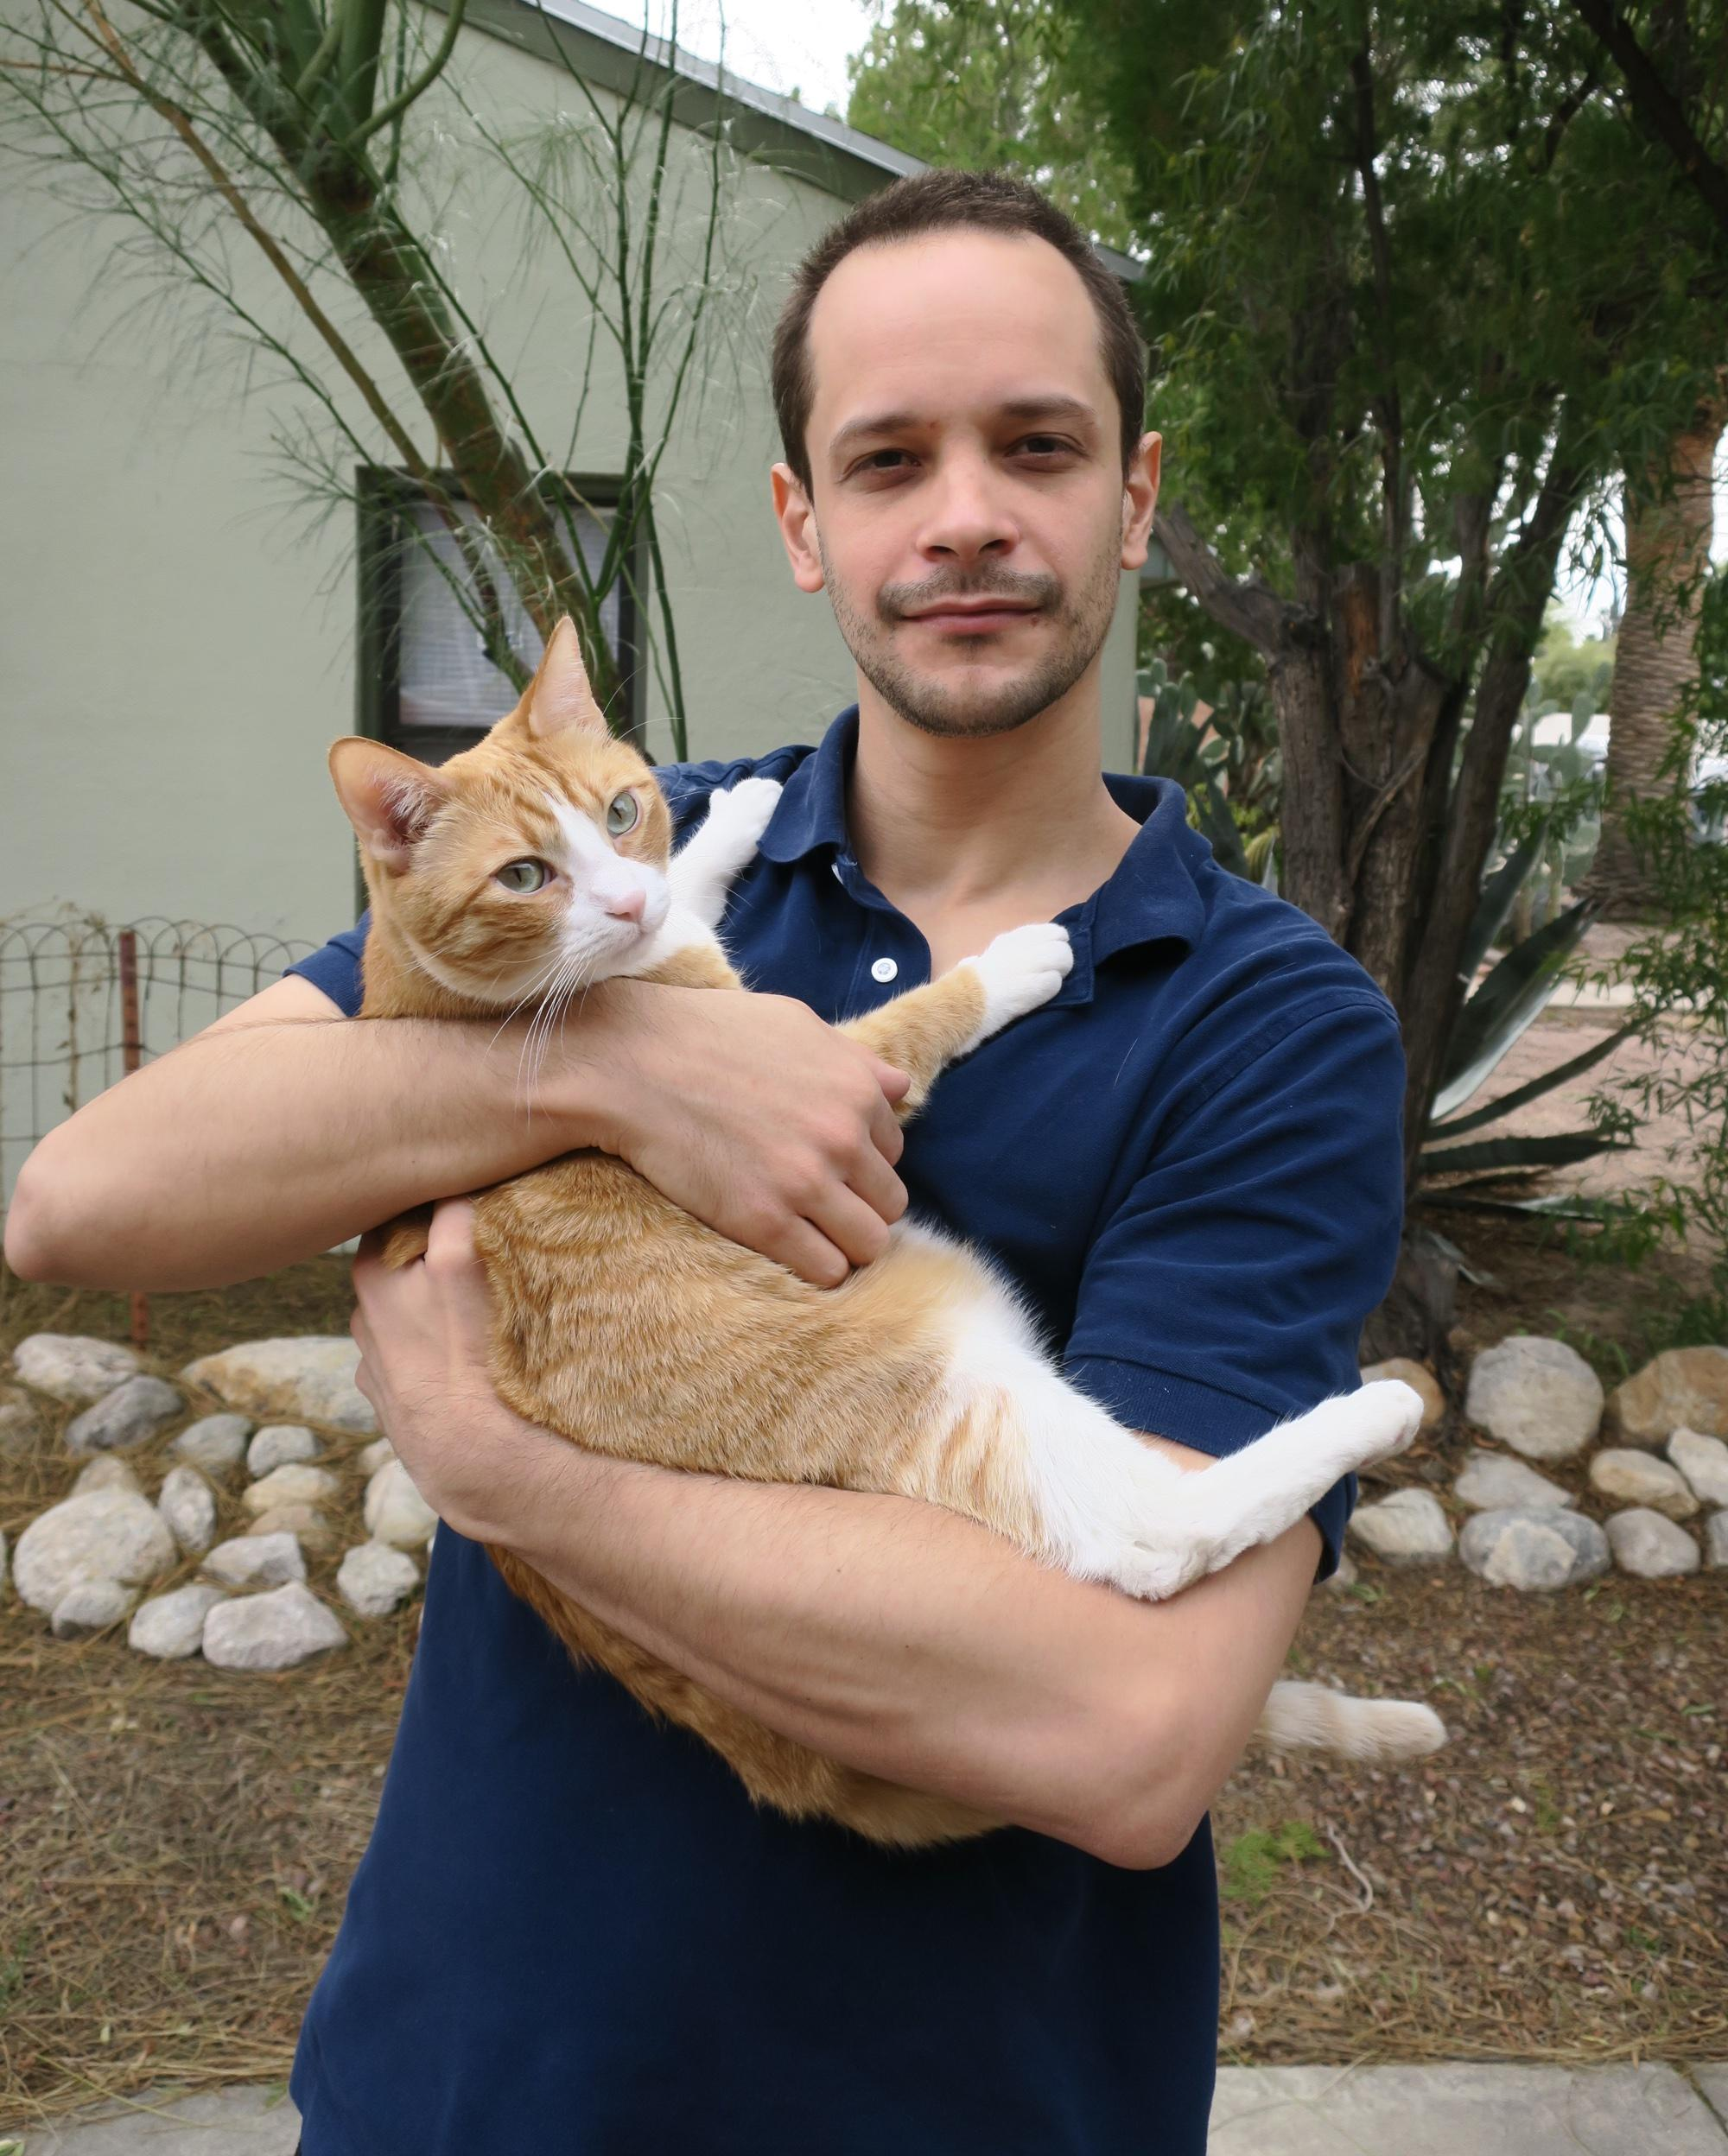 Uri Lifshin holds his cat, Chupchik. Lifshin's own love of animals is, in part, what drove him to study humans' psychological reasons for supporting killing them.